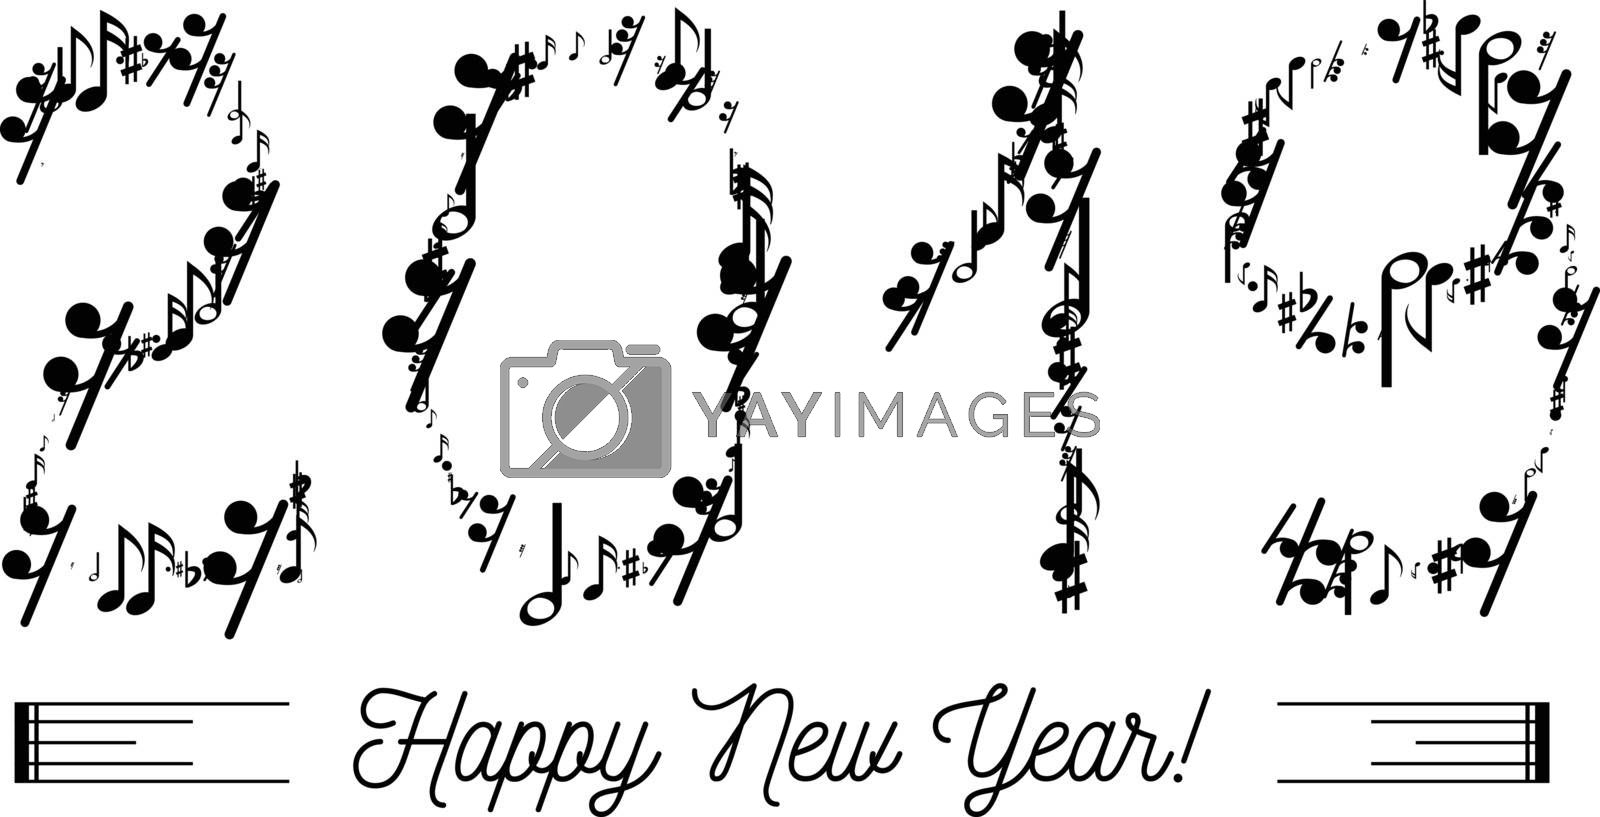 Royalty free image of Musical notes in the form of numbers year 2019 by sermax55